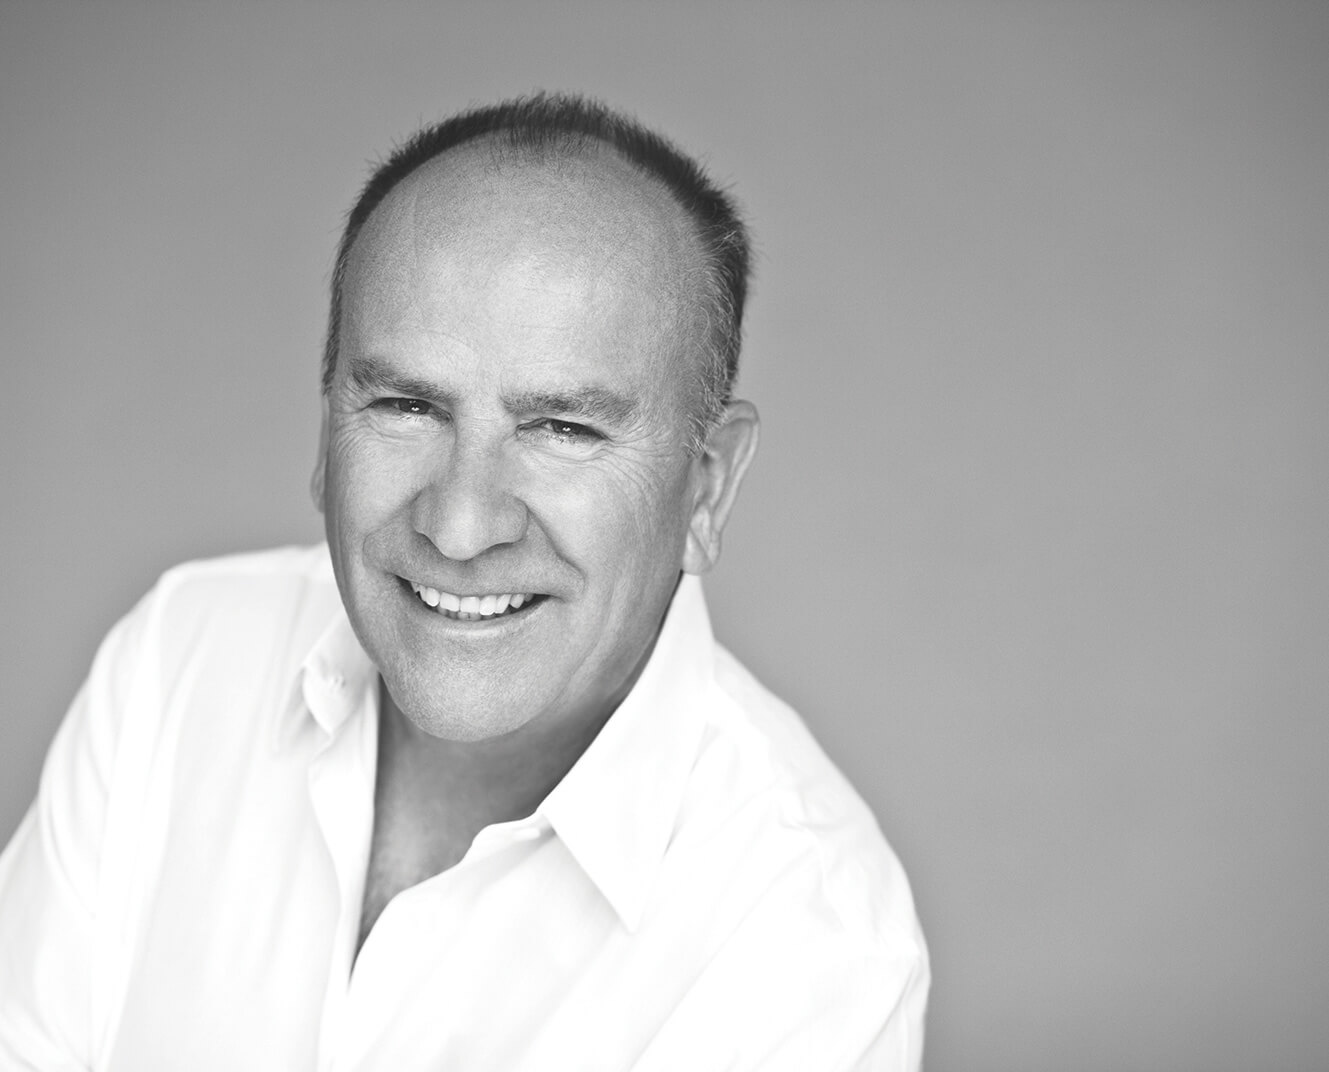 A headshot of designer Richard Frinier, who works on a line of Sunbrella fabrics